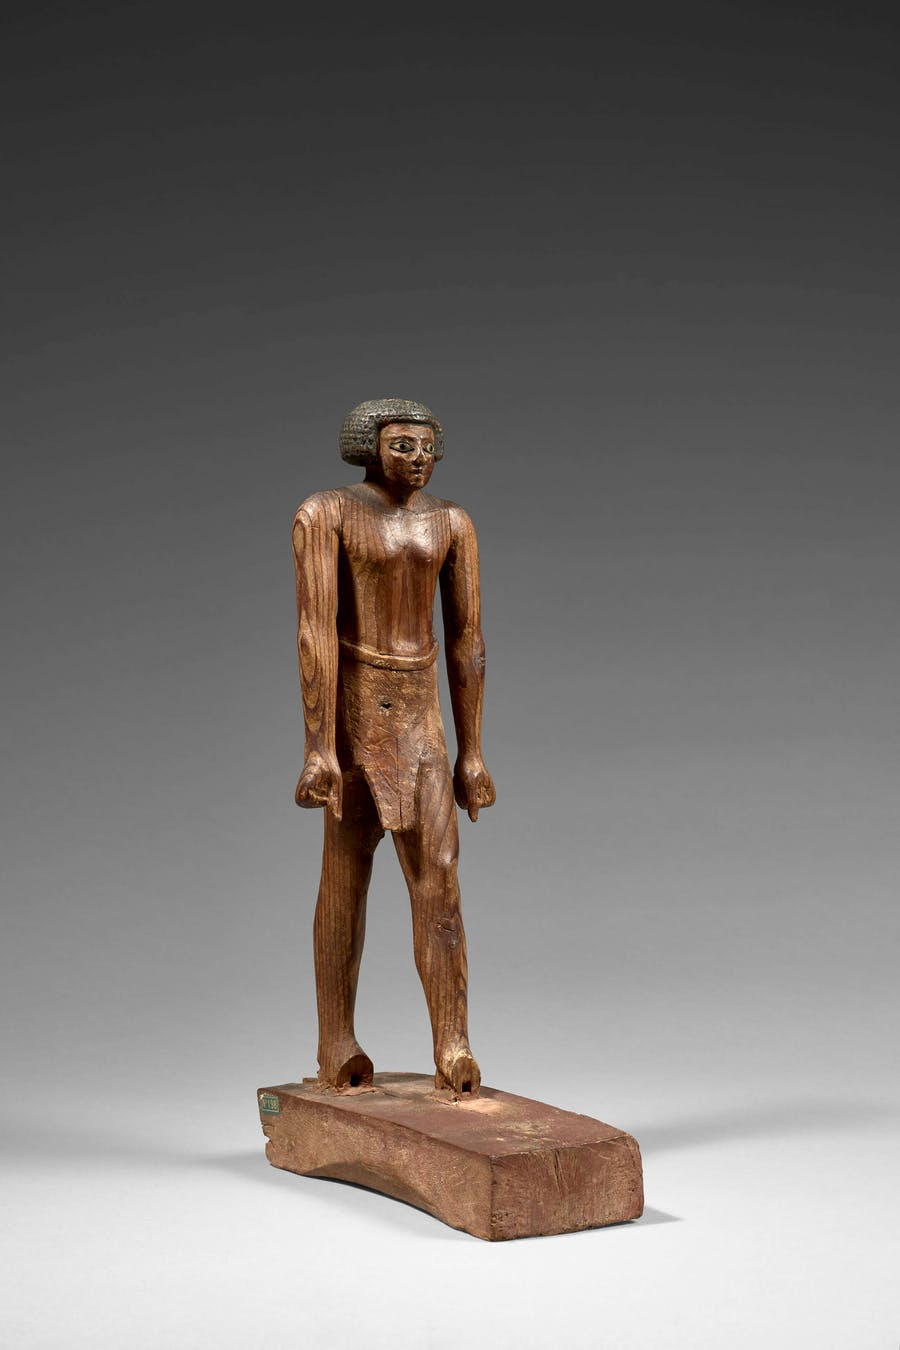 Egypt, Meir Necropolis, Middle Kingdom, 11th-12th Dynasty, 'Dignitary Statuette in Wood'. Photo: Artcurial